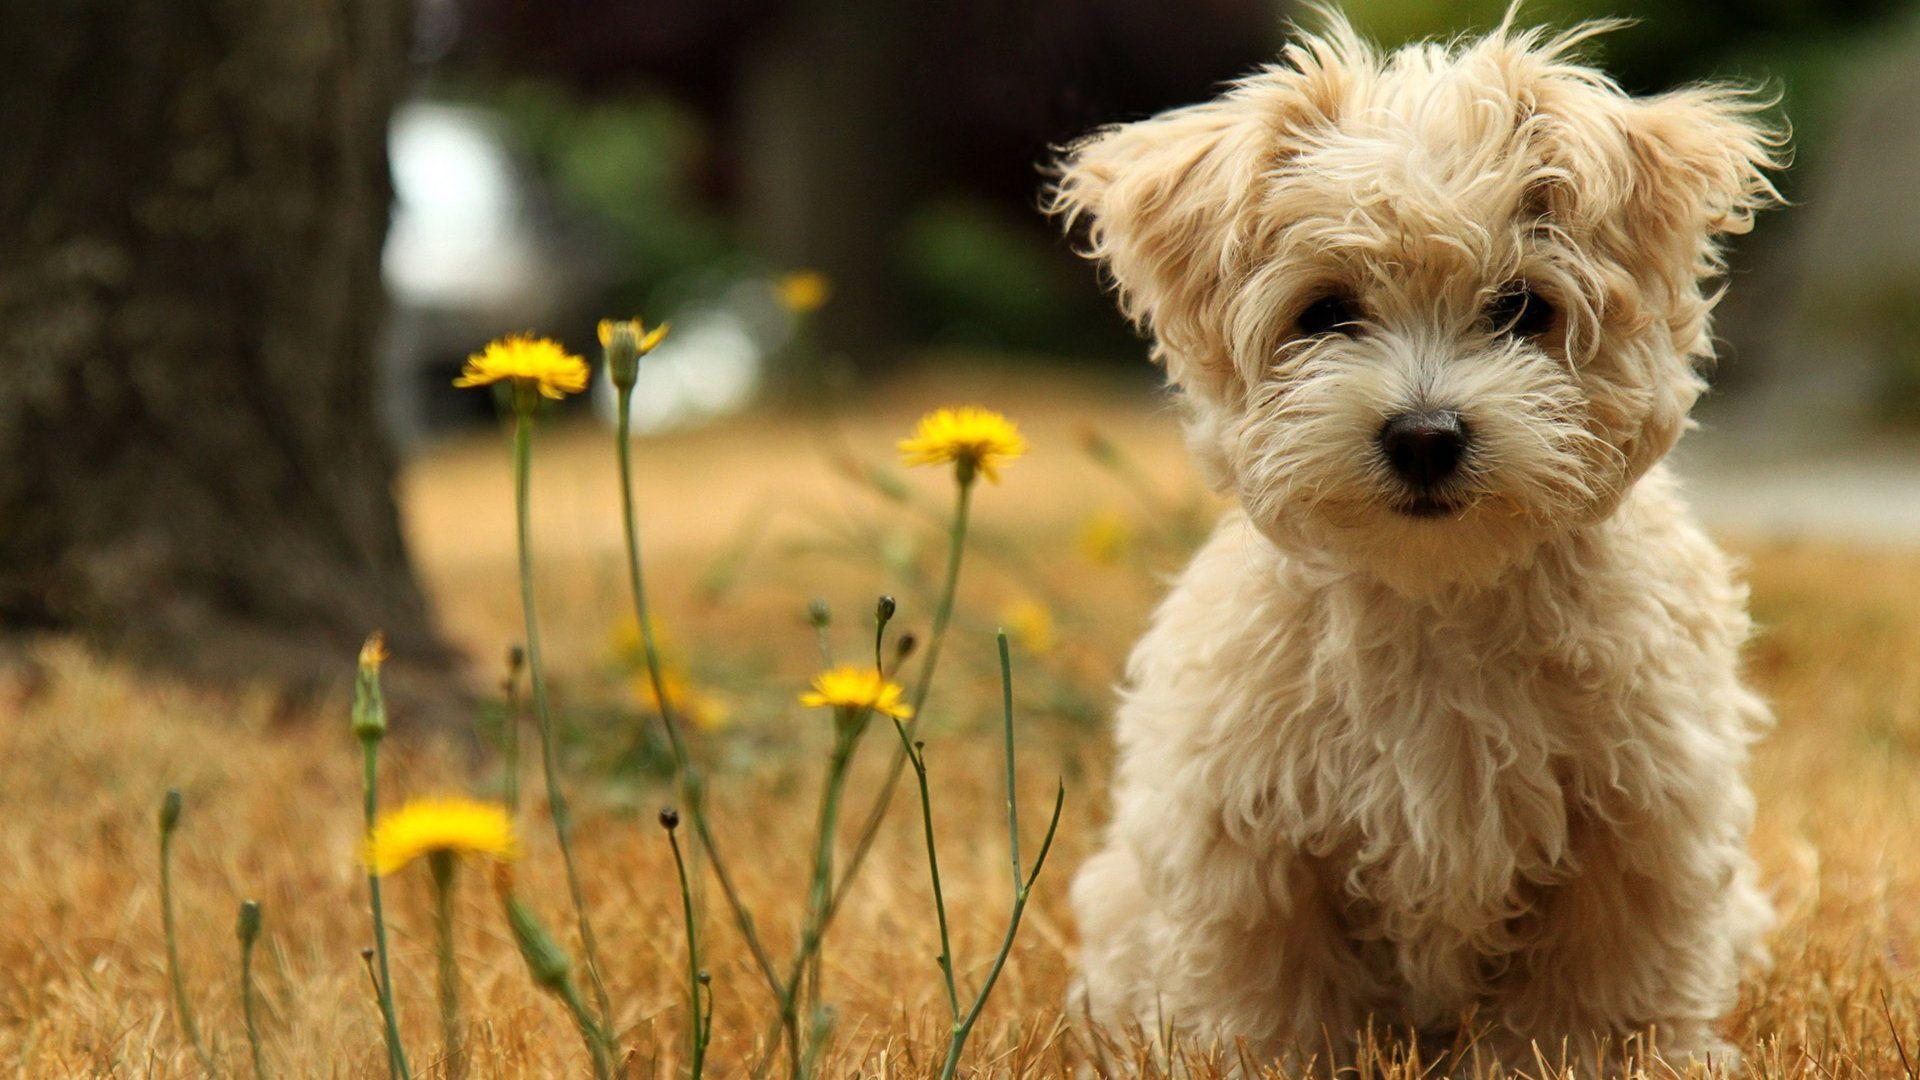 Cute Wallpapers For Laptop